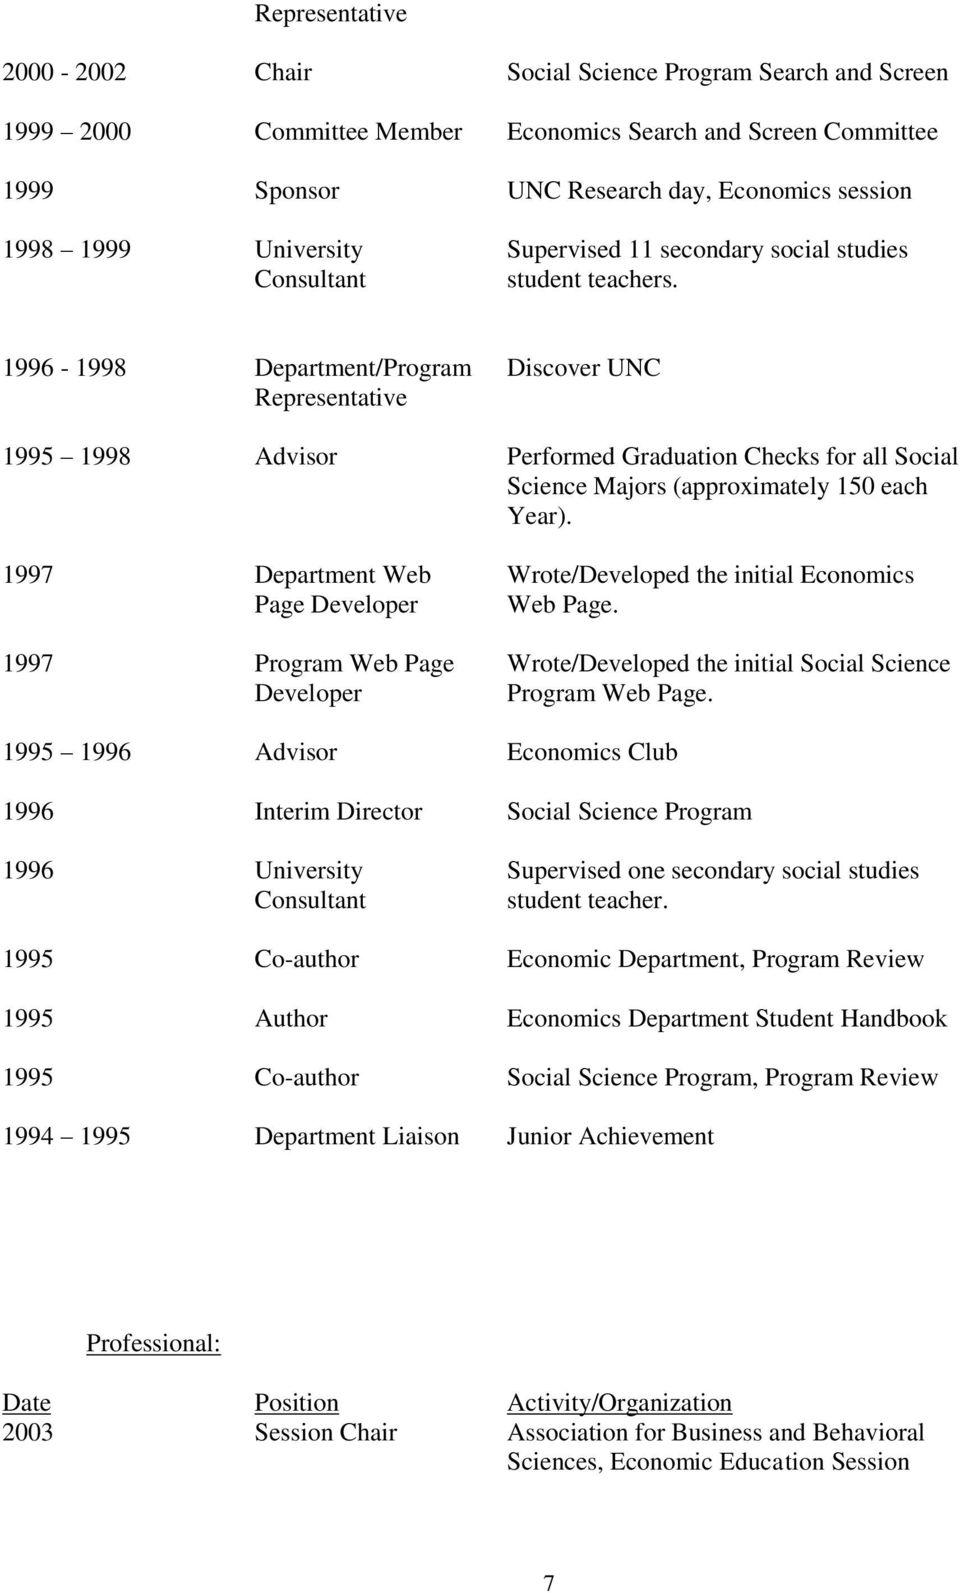 1996-1998 Department/Program Discover Representative 1995 1998 Advisor Performed Graduation Checks for all Social Science Majors (approximately 150 each Year).